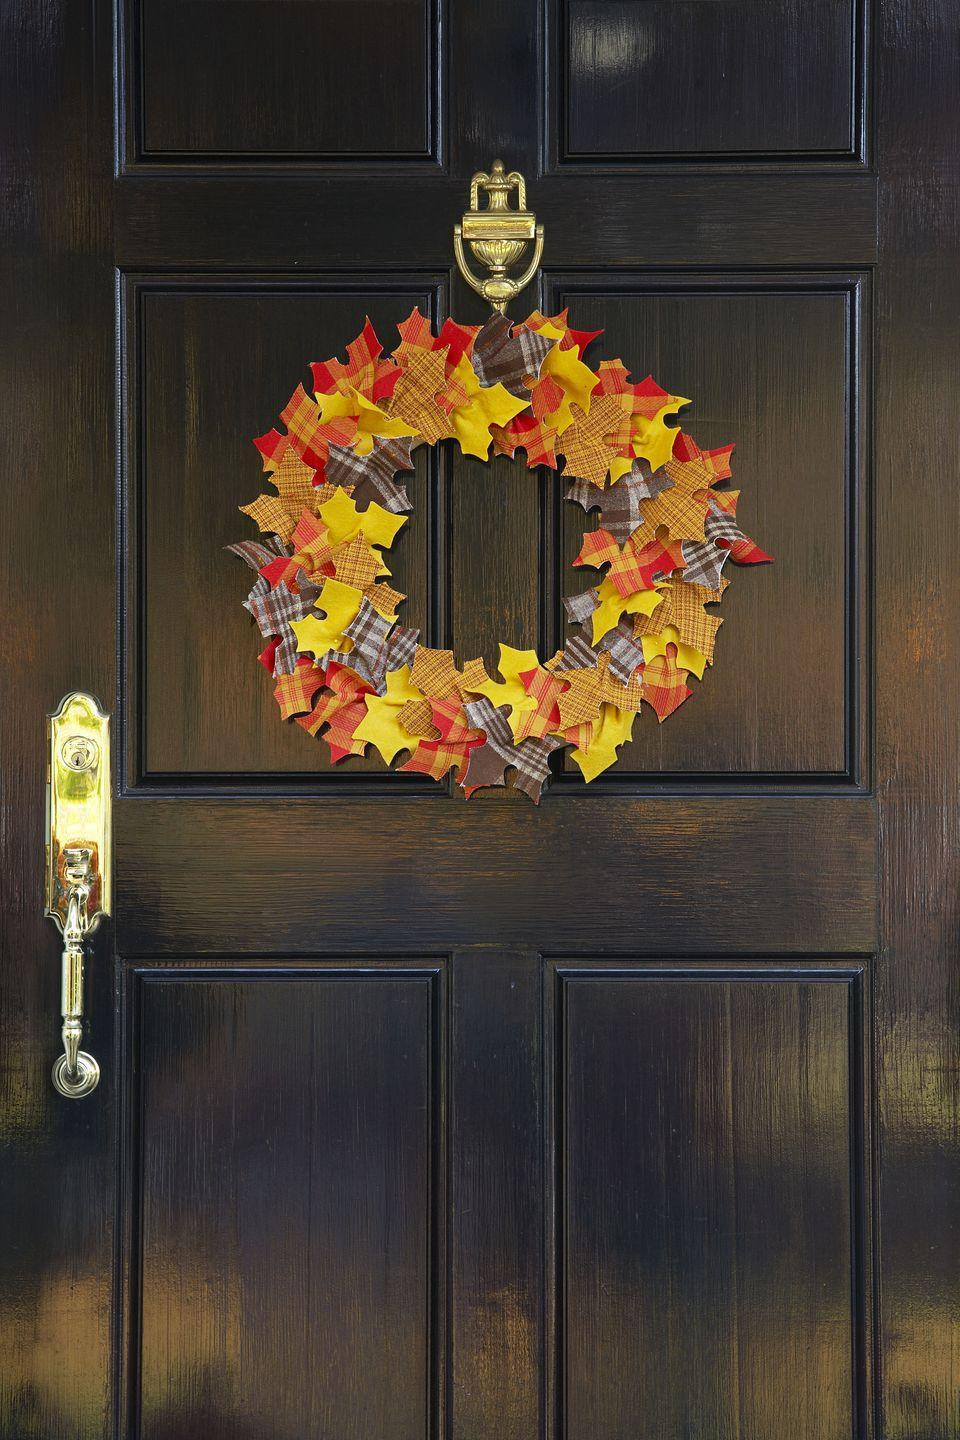 """<p>Perfect for classic decor lovers, a leaf wreath can easily add some color to a dark-colored door. </p><p><a class=""""link rapid-noclick-resp"""" href=""""https://go.redirectingat.com?id=74968X1596630&url=https%3A%2F%2Fwww.potterybarn.com%2Fproducts%2Flive-preserved-oak-leaf-wreath%2F&sref=https%3A%2F%2Fwww.goodhousekeeping.com%2Fholidays%2Fhalloween-ideas%2Fg32948621%2Fhalloween-door-decorations%2F"""" rel=""""nofollow noopener"""" target=""""_blank"""" data-ylk=""""slk:SHOP LEAF WREATH"""">SHOP LEAF WREATH</a></p>"""